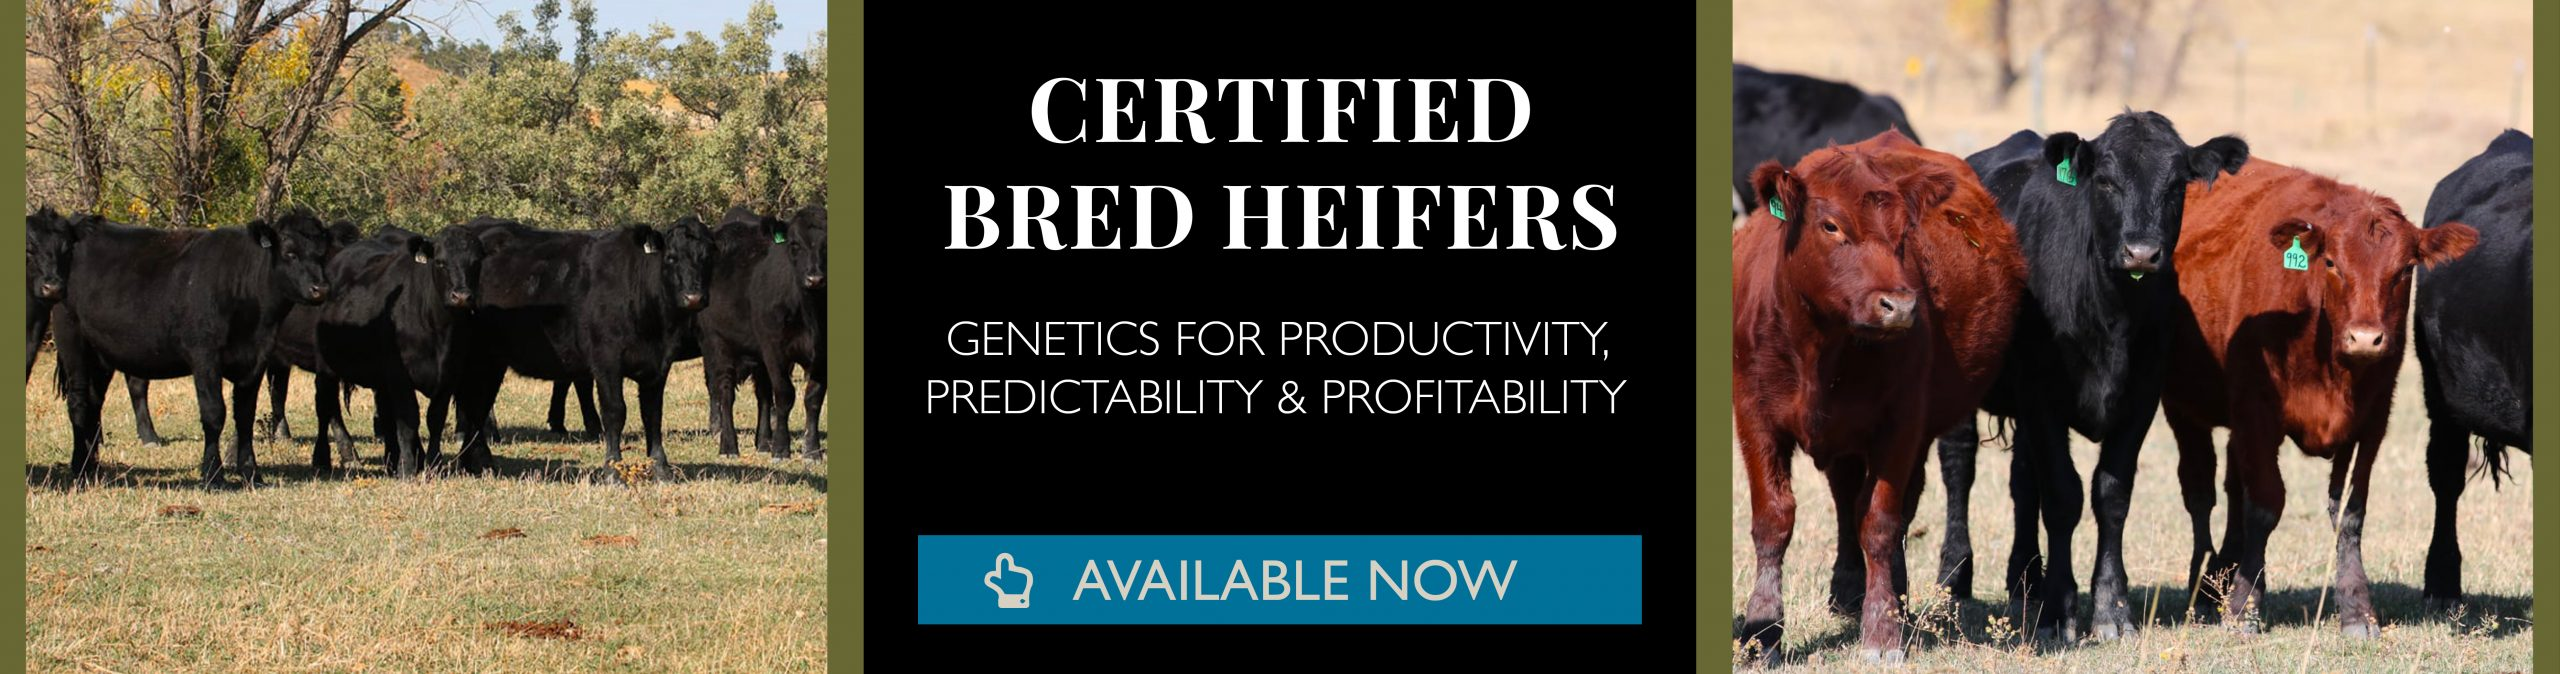 Bred Heifers Available